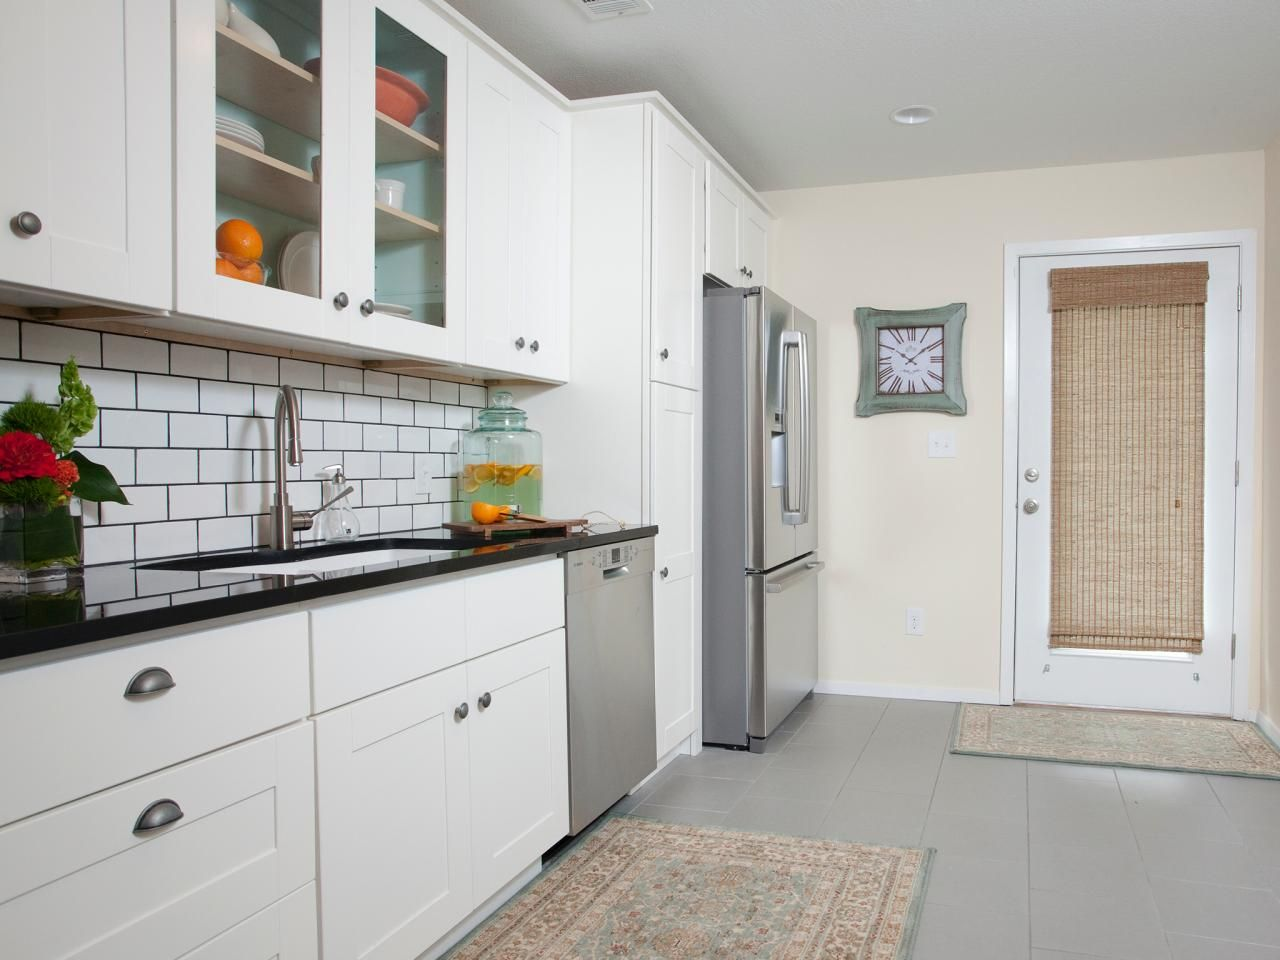 Pictures of Small Kitchen Design Ideas From | Hgtv kitchens, Hgtv ...